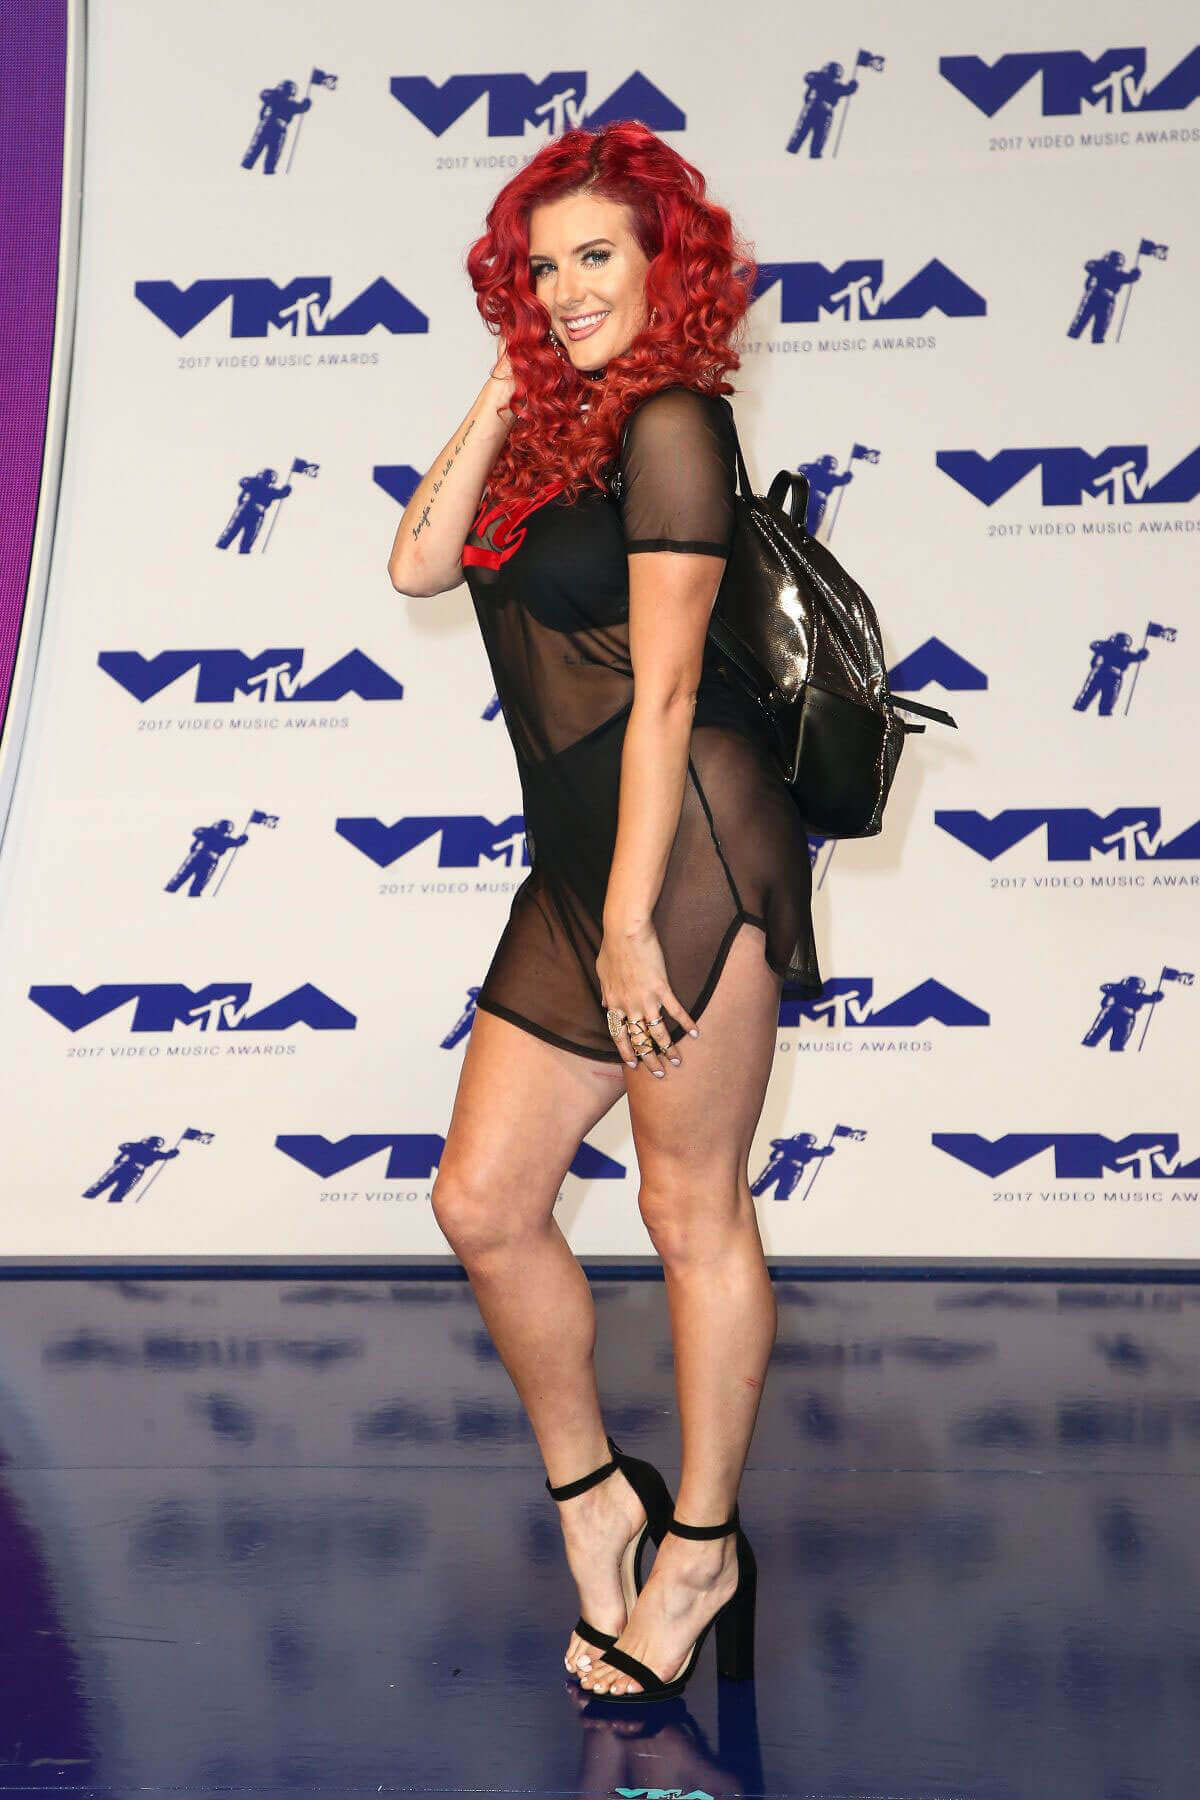 Cleavage Justina Valentine nudes (29 photo), Tits, Is a cute, Boobs, butt 2006